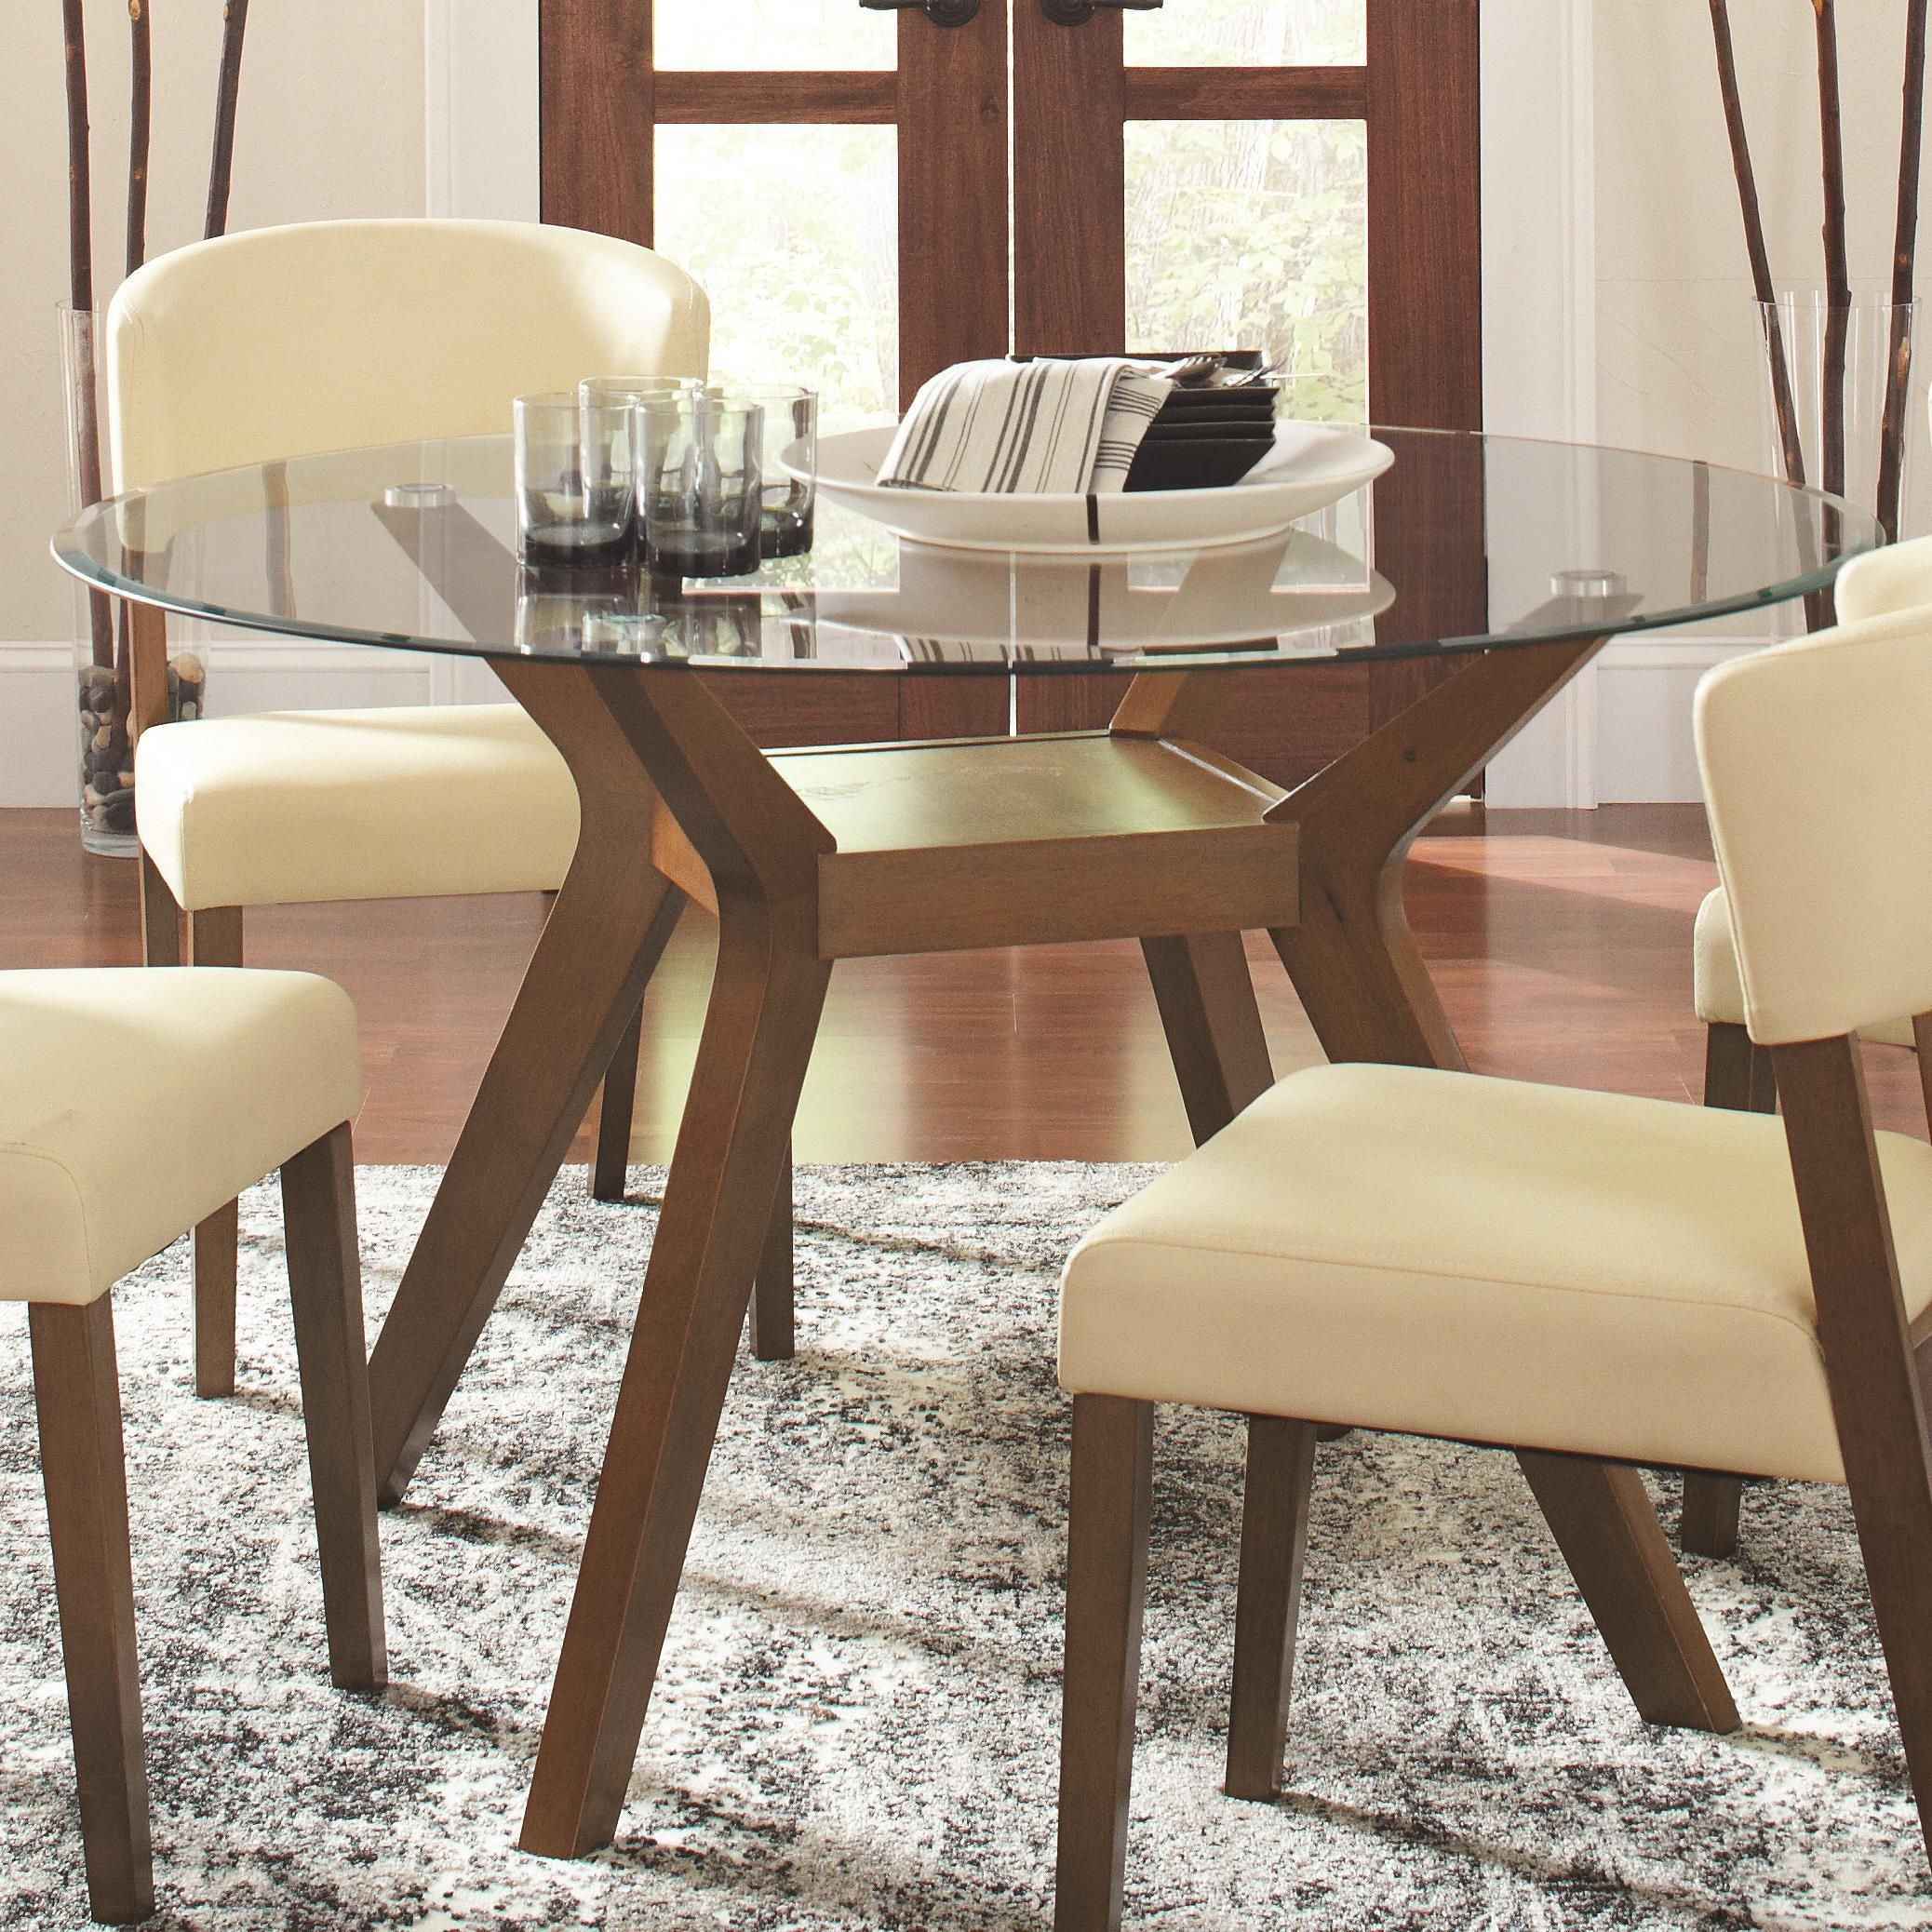 Paxton Round Glass Dining Table from Coaster 122180CB48RD  Coleman Furniture